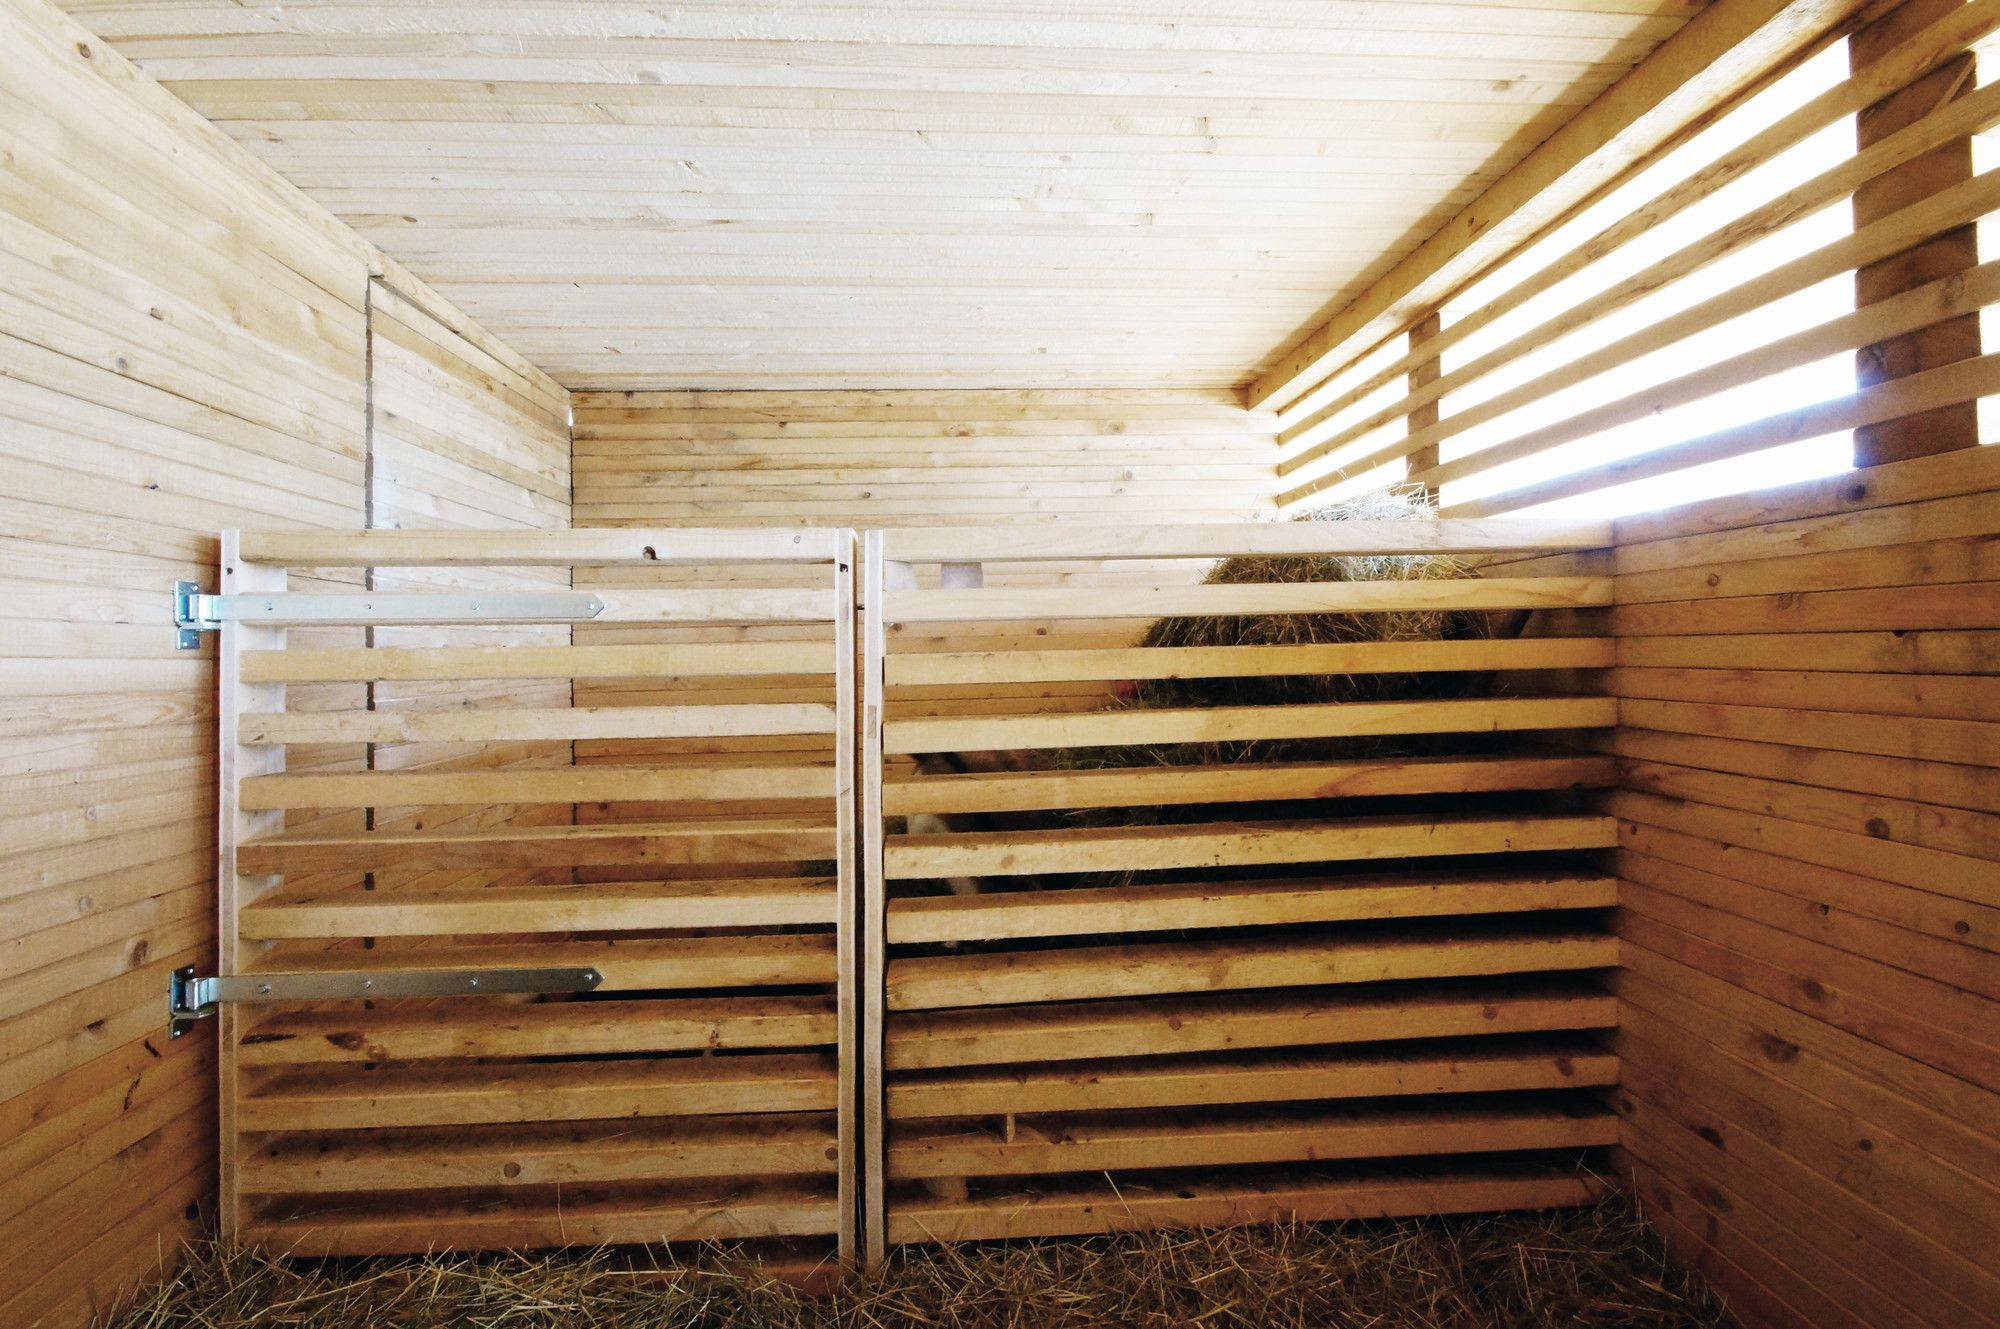 Gallery Of Goat Barn In Bavaria / Kühnlein Architektur - 3